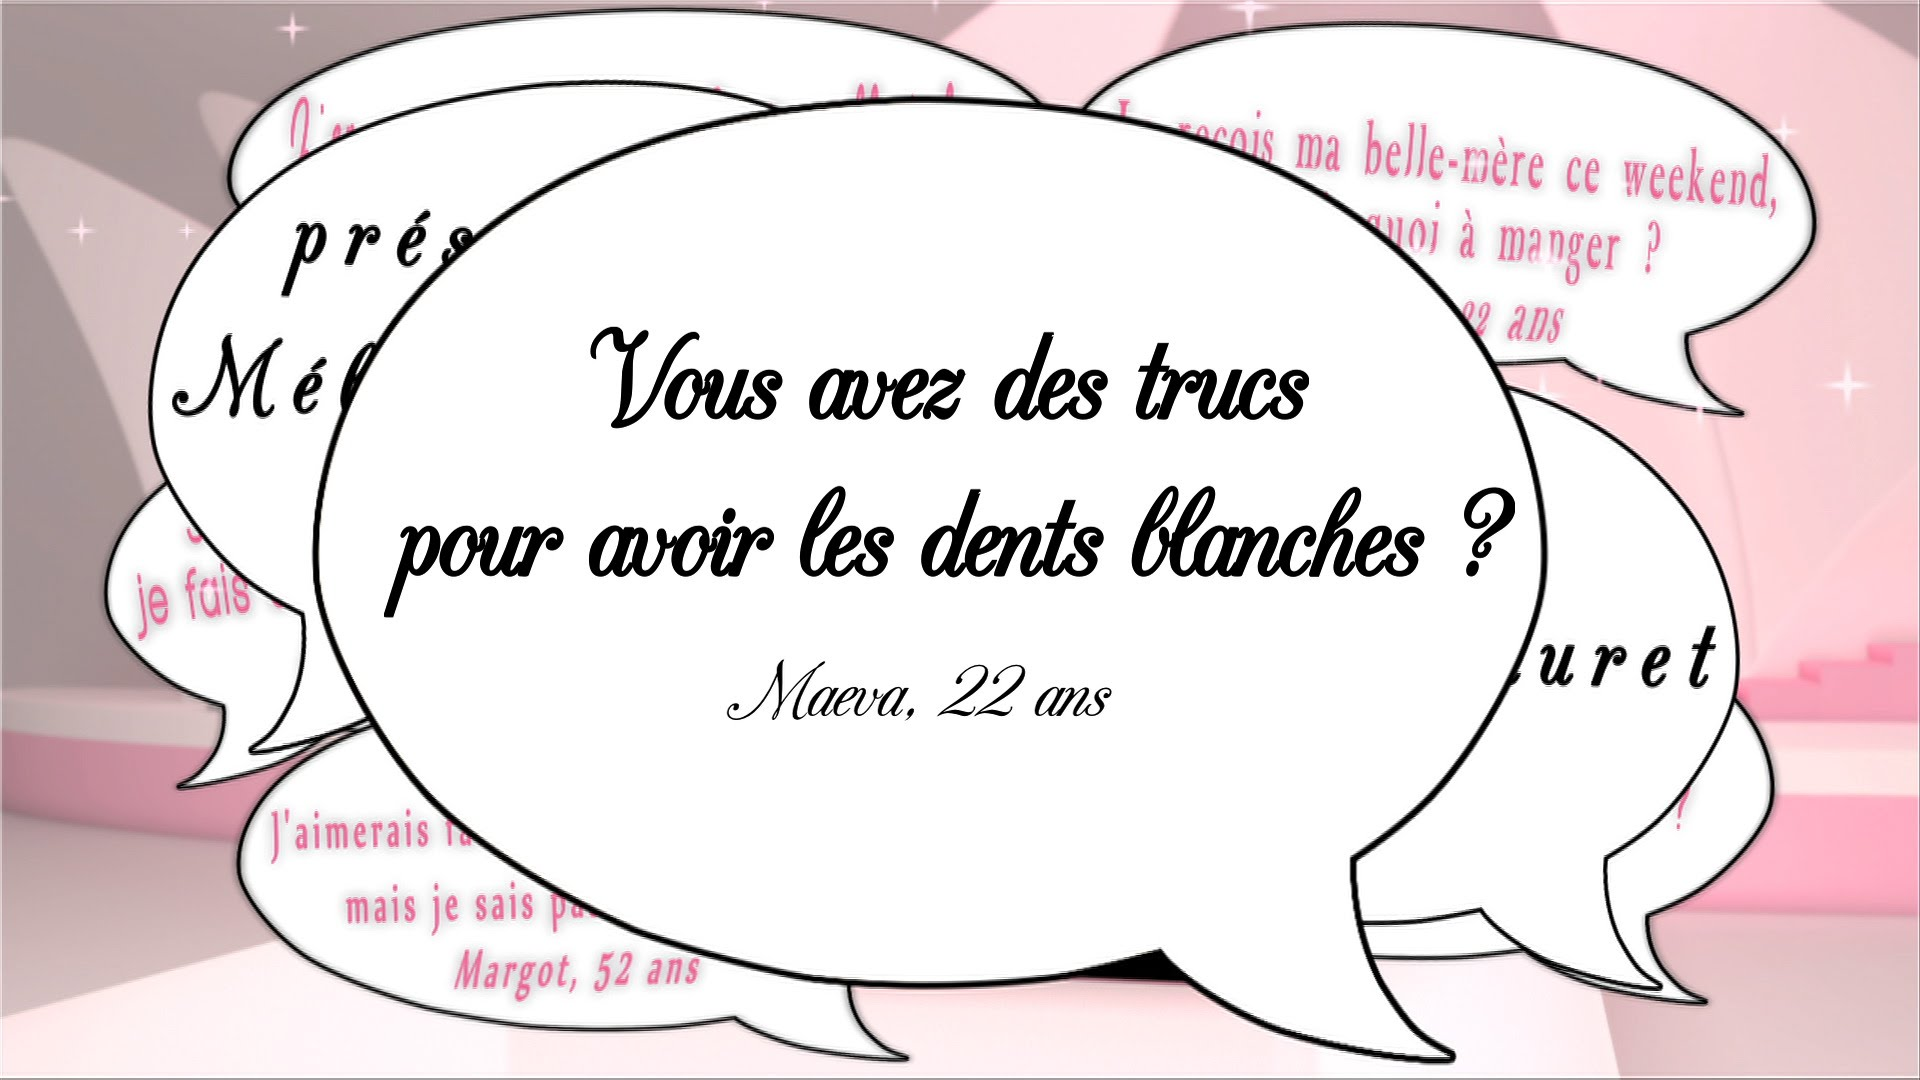 Des dents banches facilement